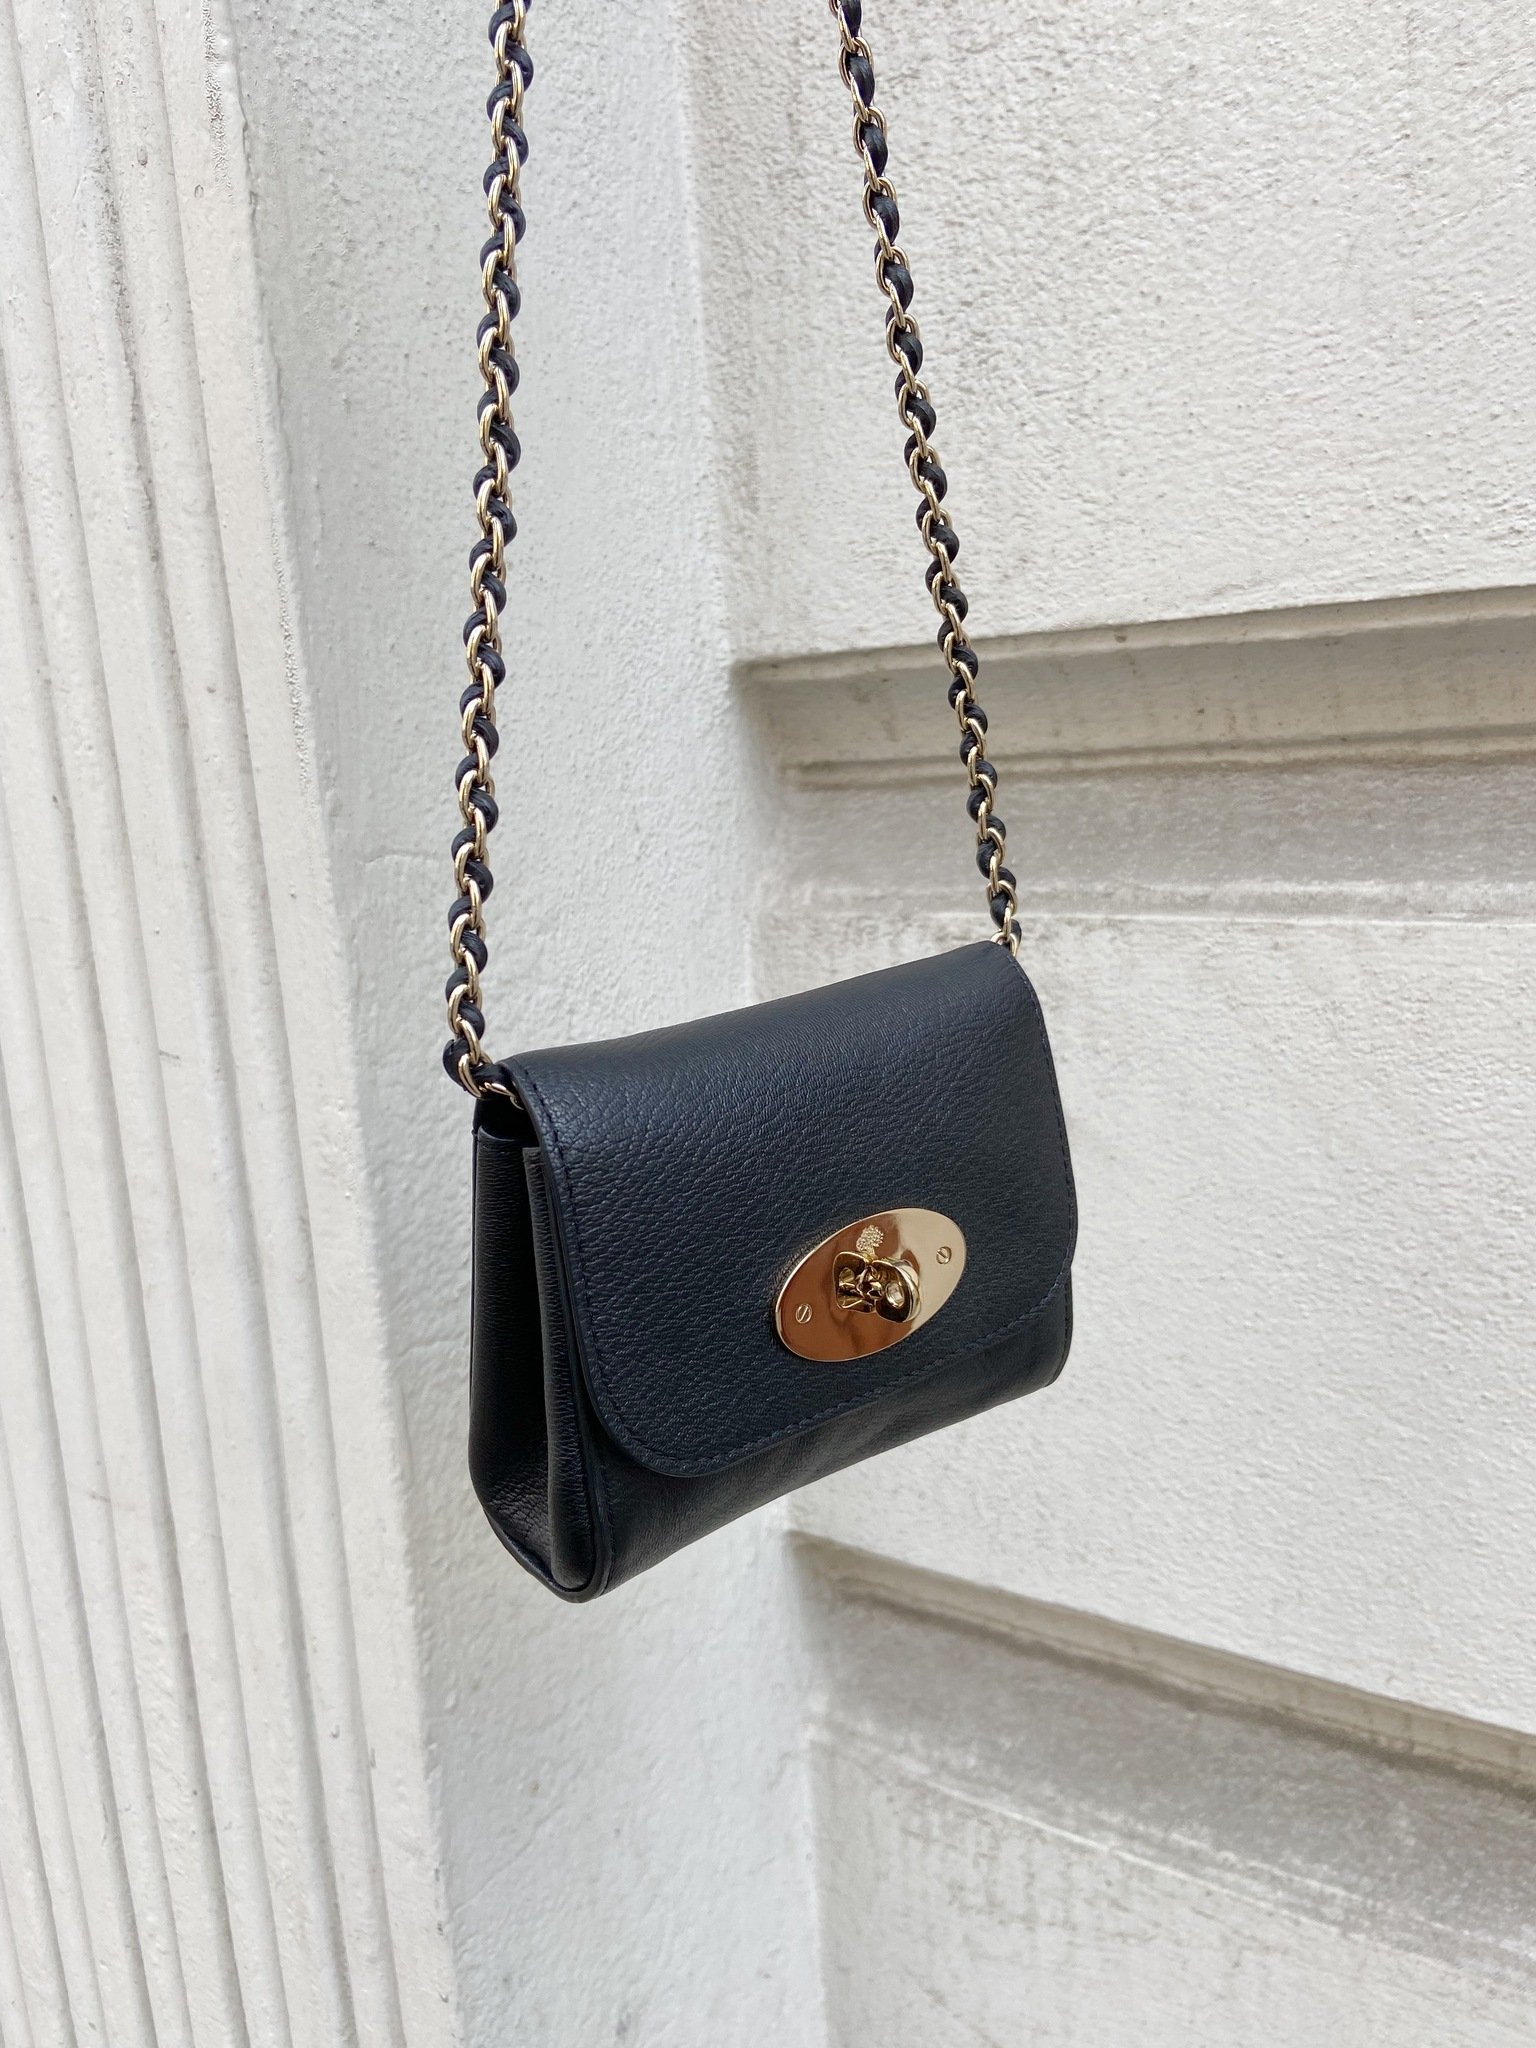 Mulberry mini Lily chain bag